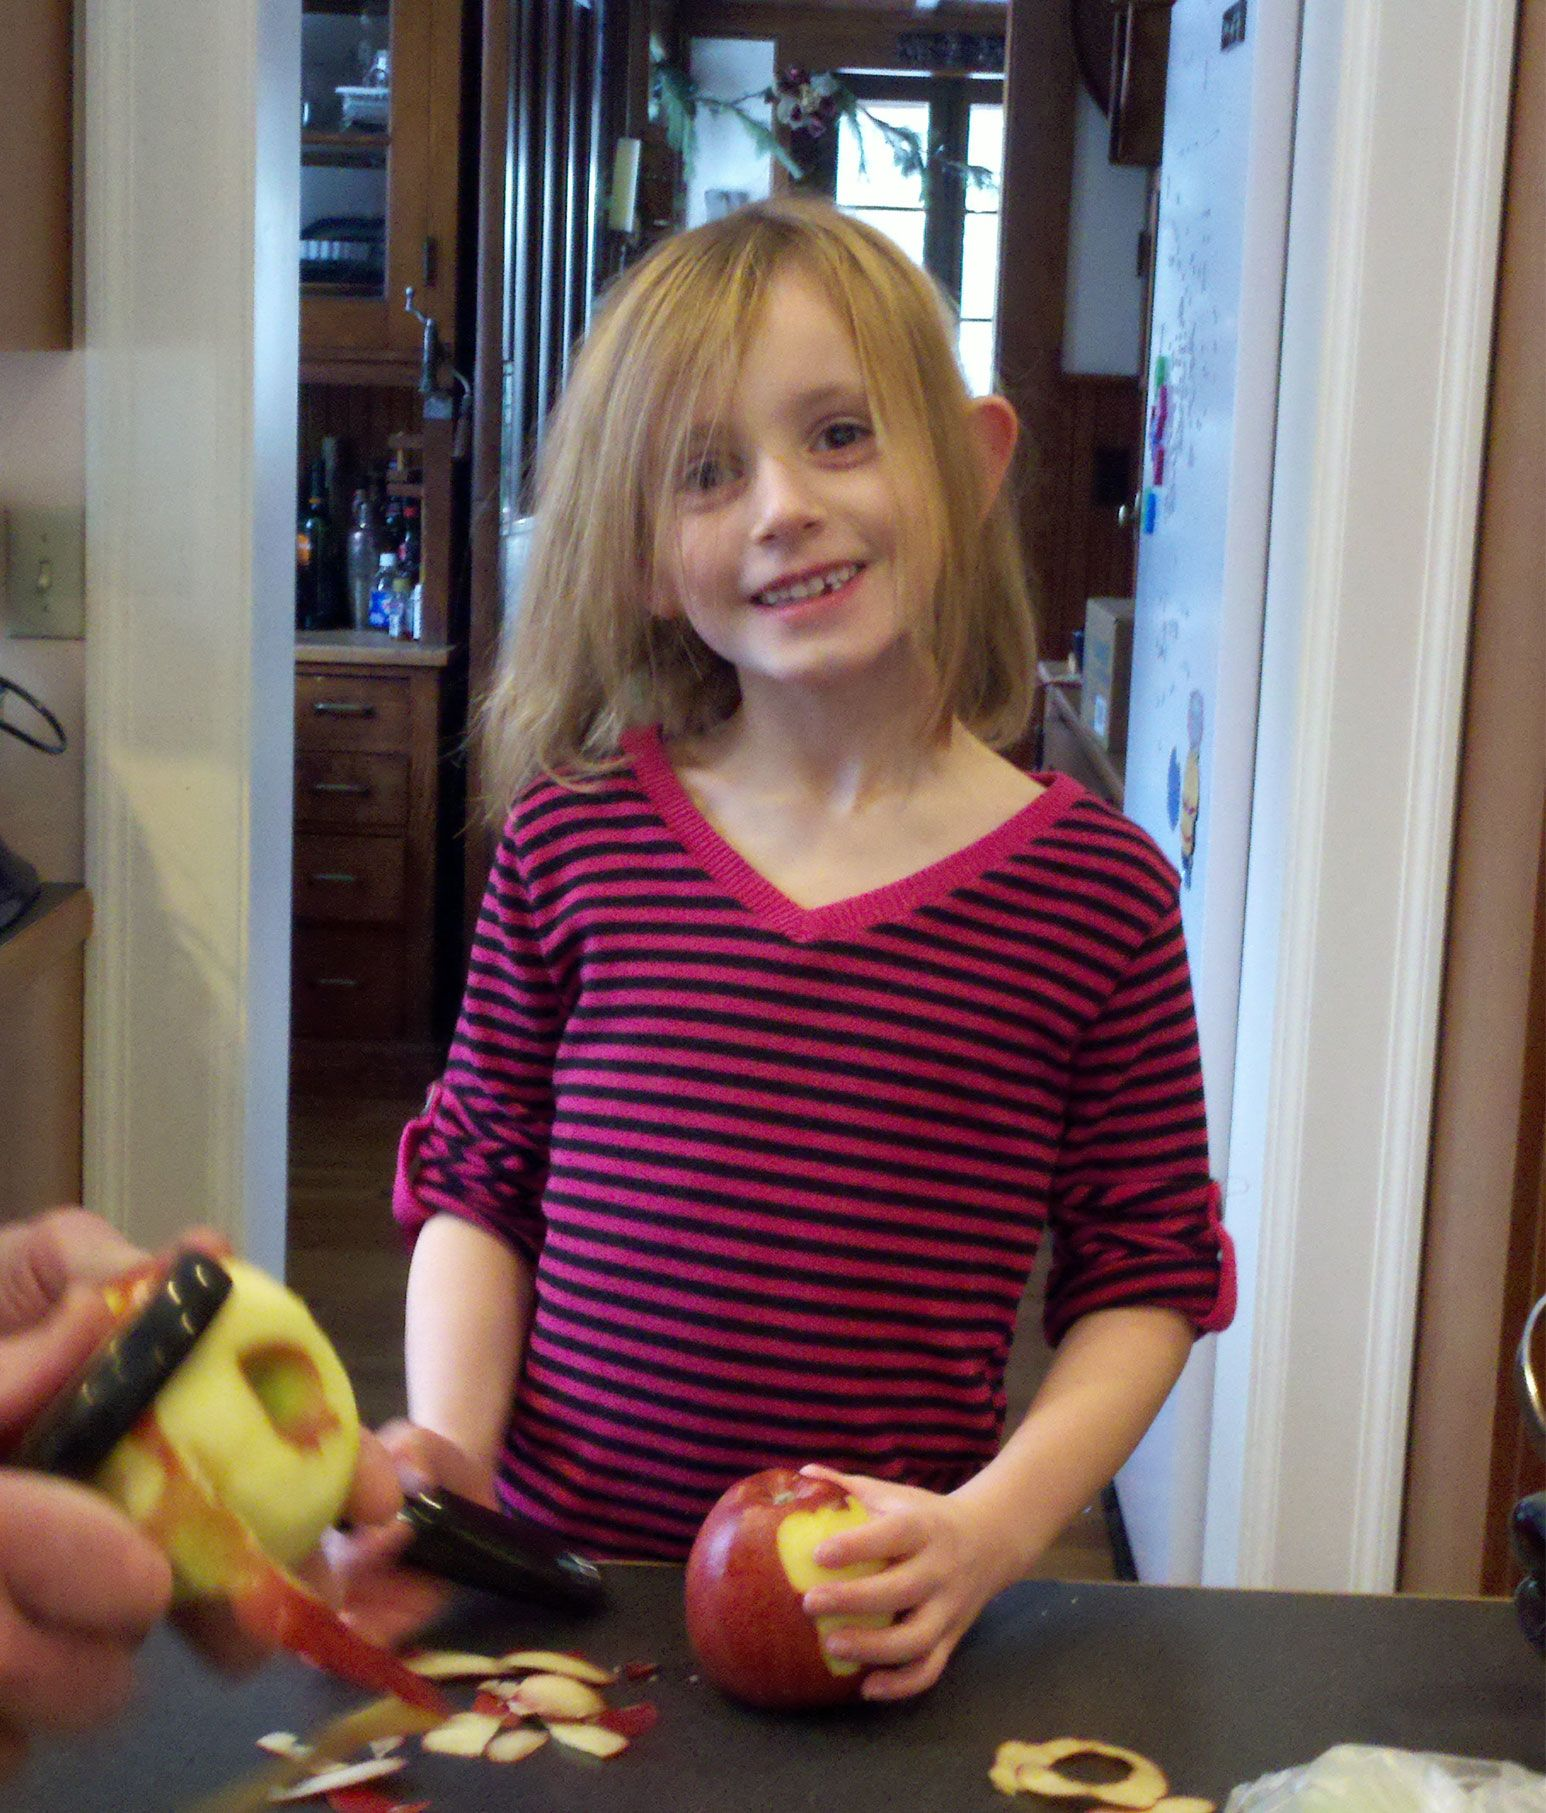 A skinny young girl stands in front of a kitchen table smiling as she holds a freshly cut apple.